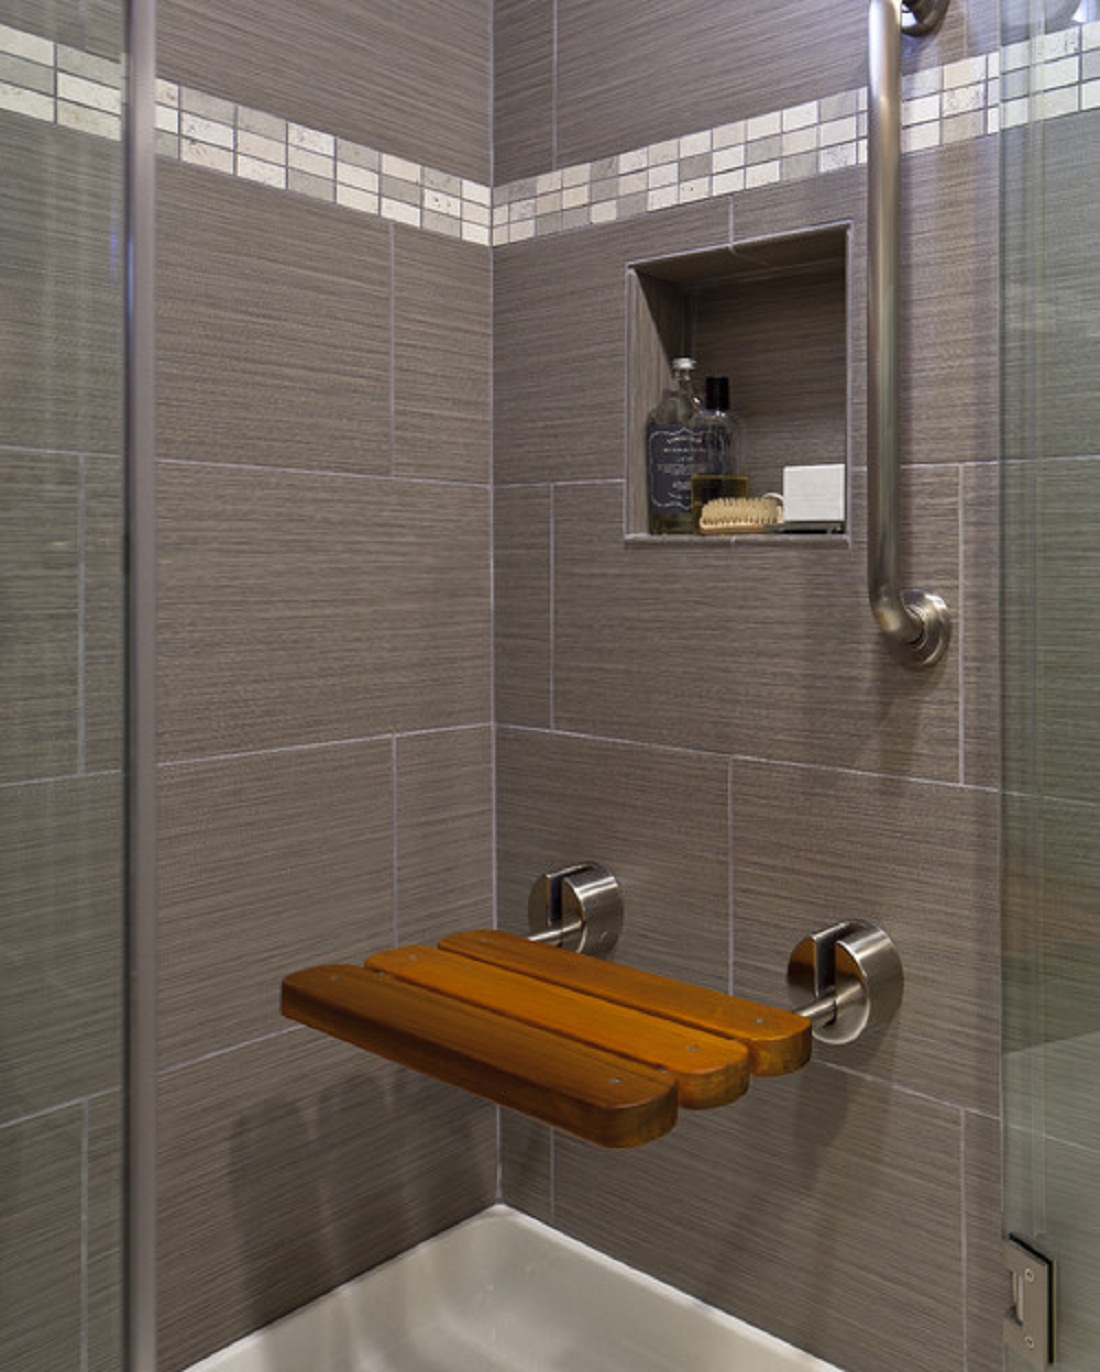 Bathroom Tile Ideas: 50 Magnificent Ultra Modern Bathroom Tile Ideas, Photos